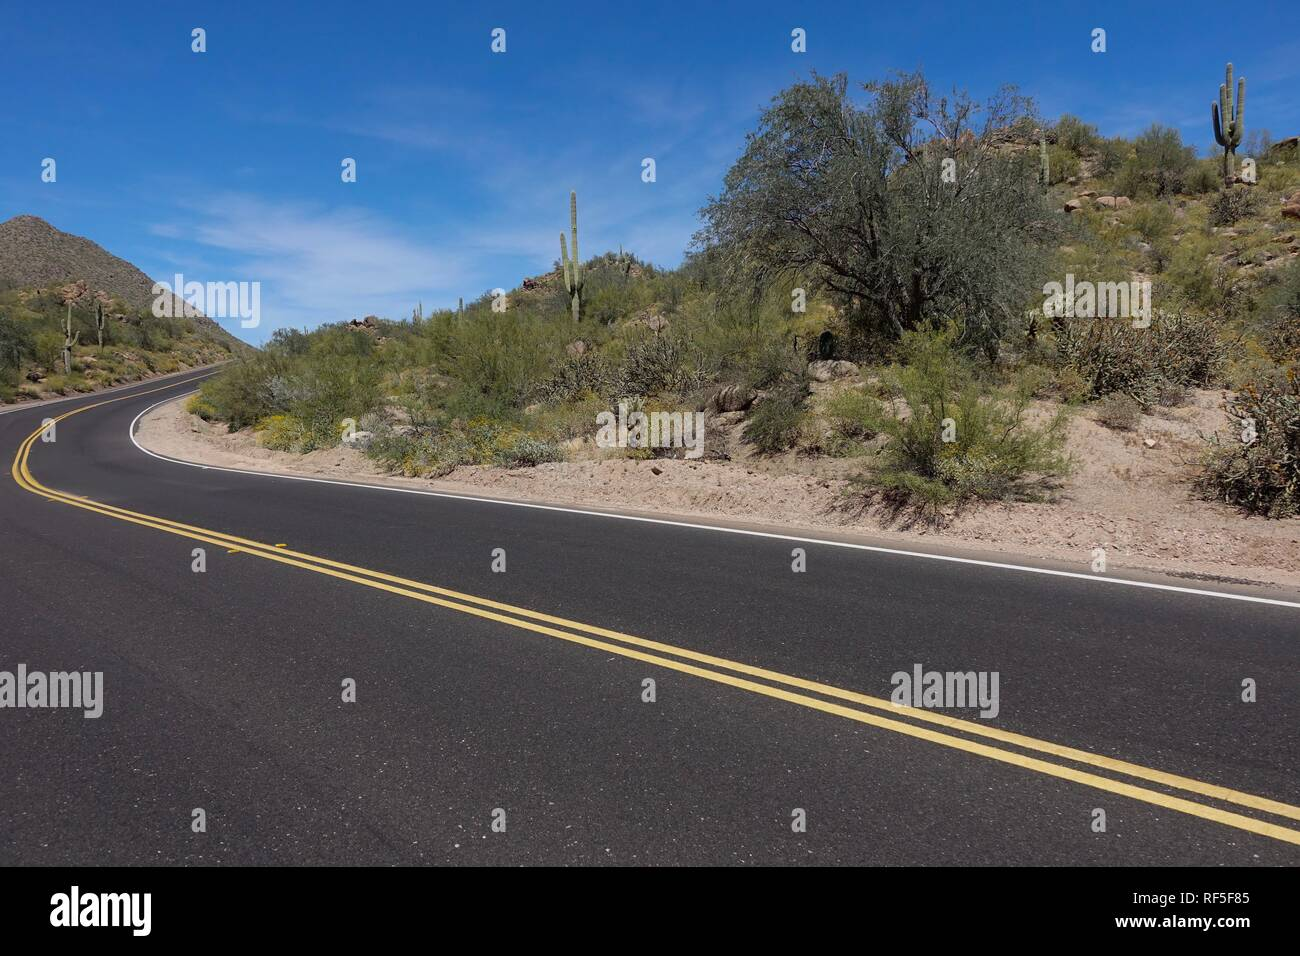 A view of an empty road winding through the desert in Arizona. - Stock Image